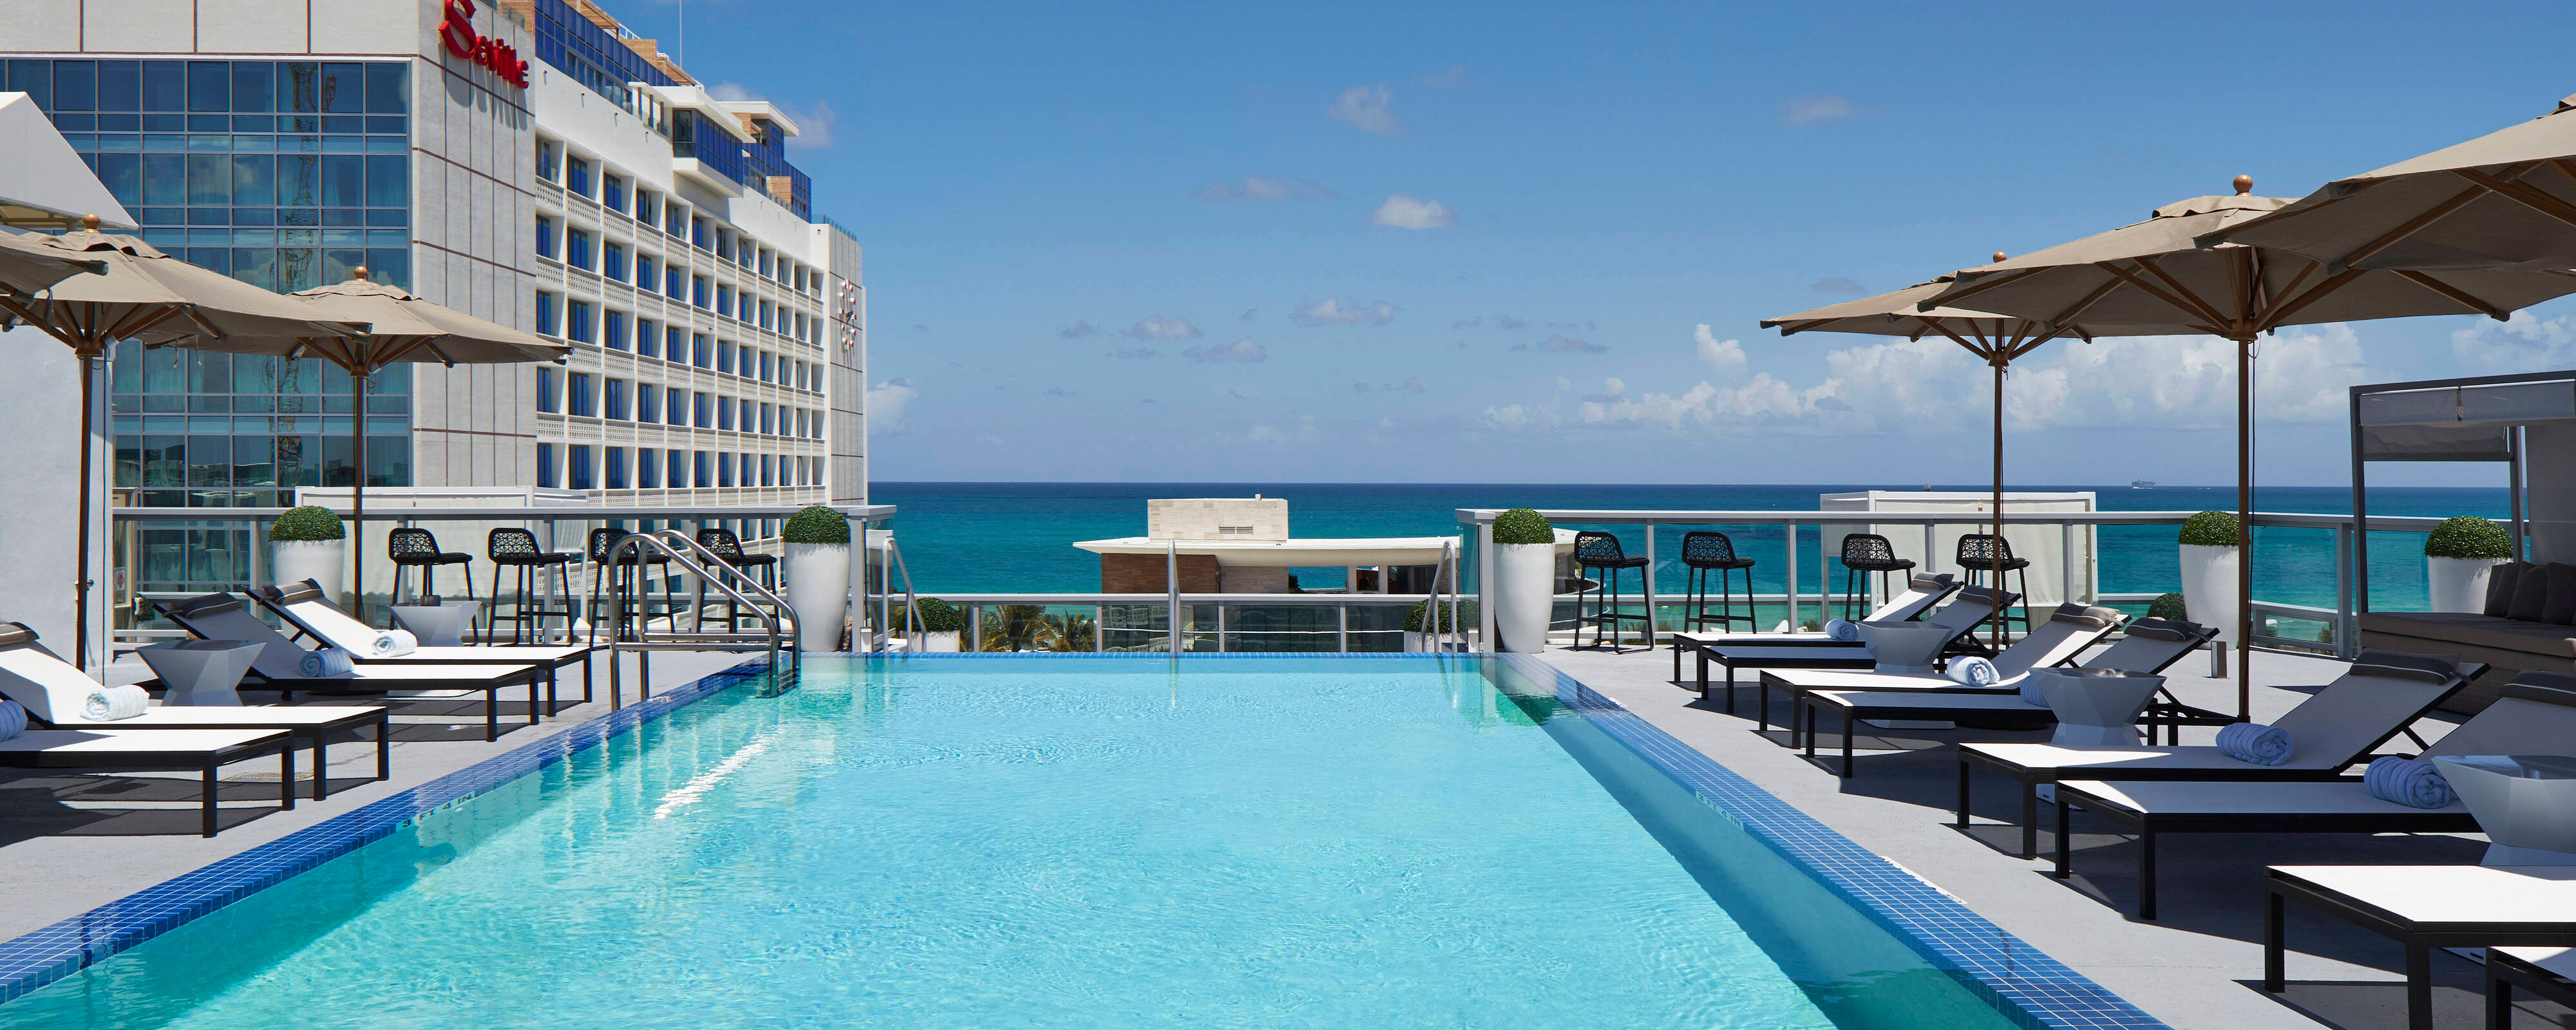 Modern Rooftop Pool Miami Beach Hotel